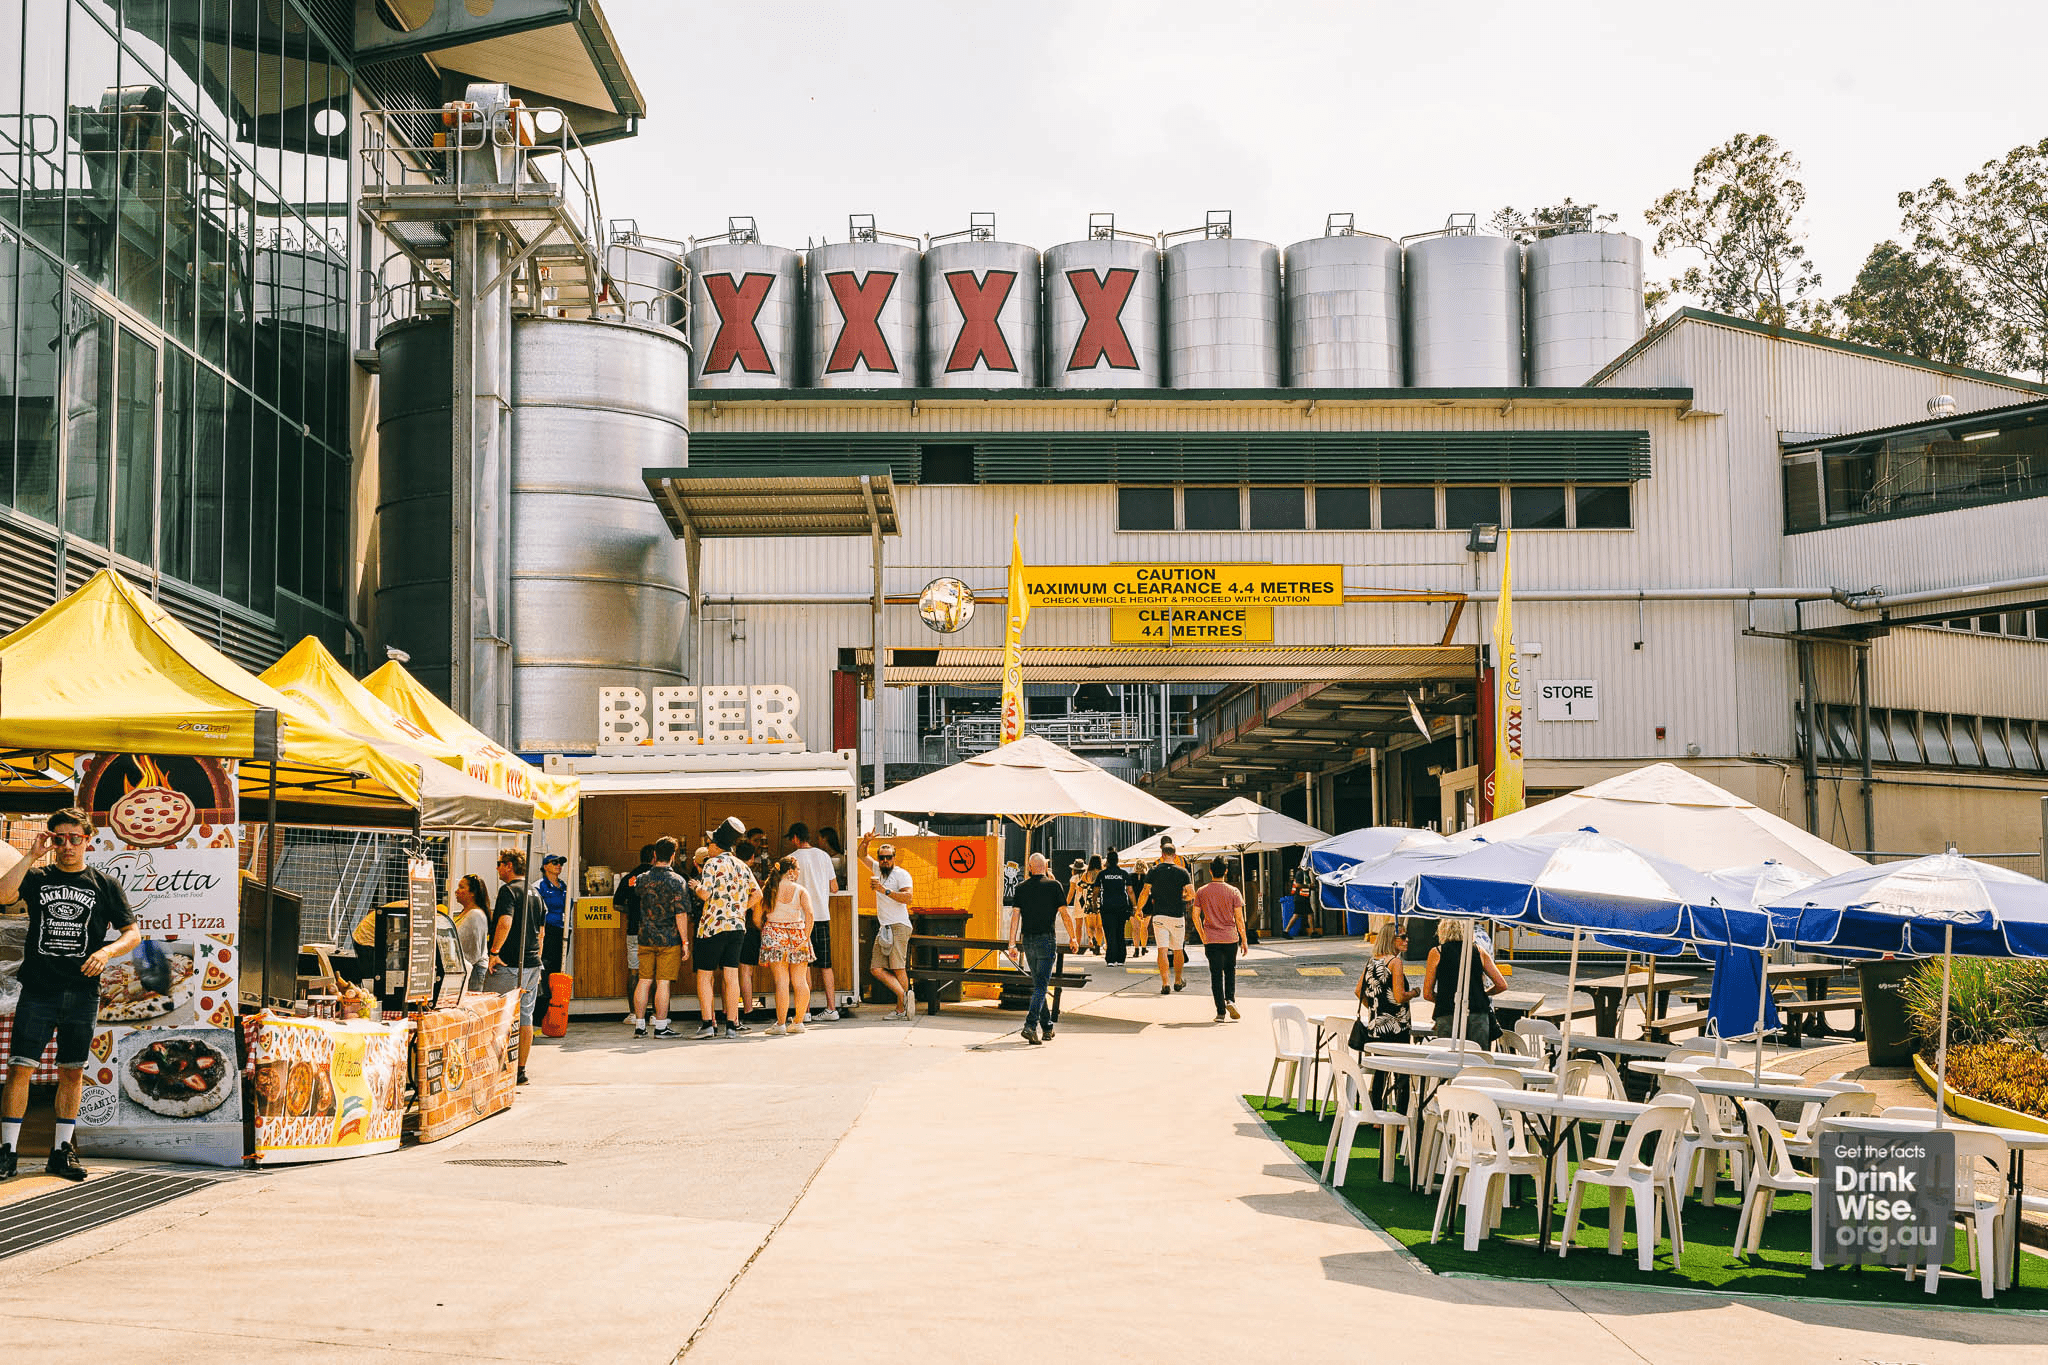 Exterior view of brewery with bar, seating and food stalls